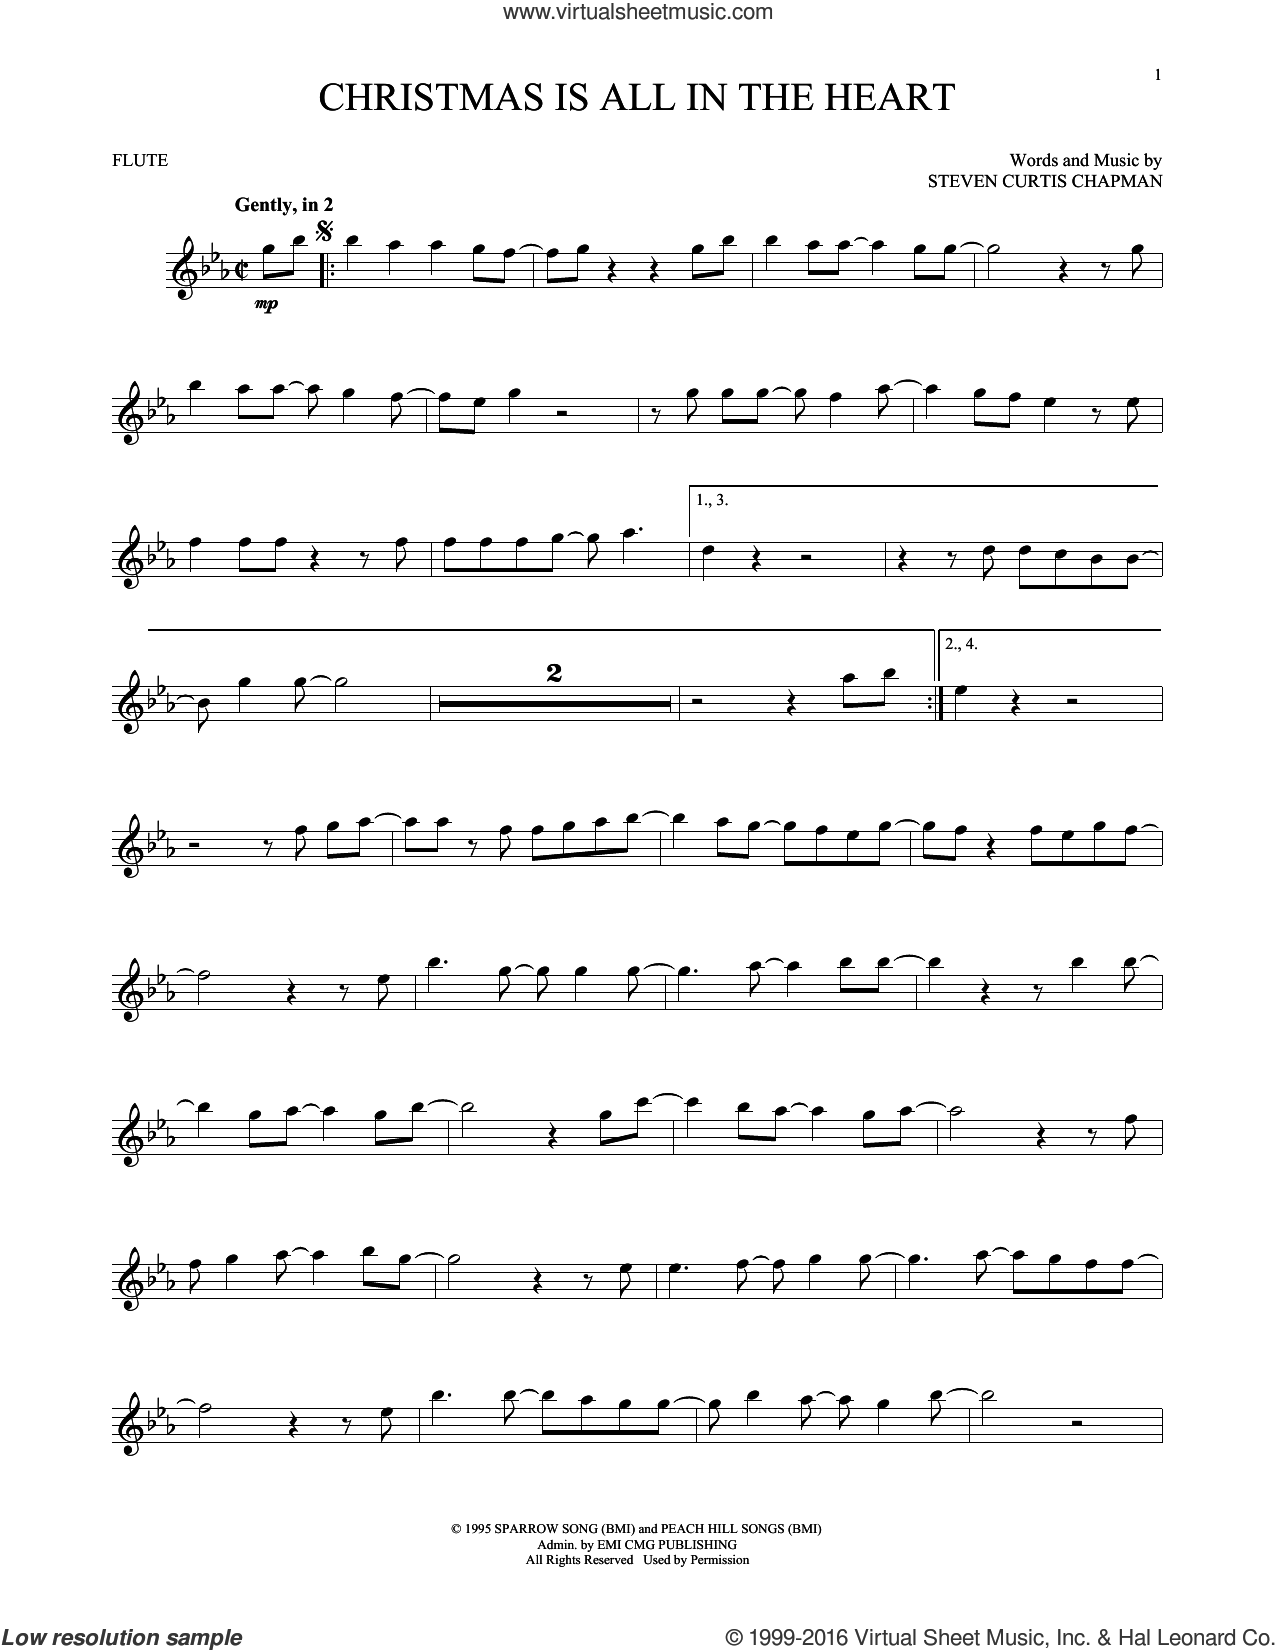 Christmas Is All In The Heart sheet music for flute solo by Steven Curtis Chapman, intermediate skill level